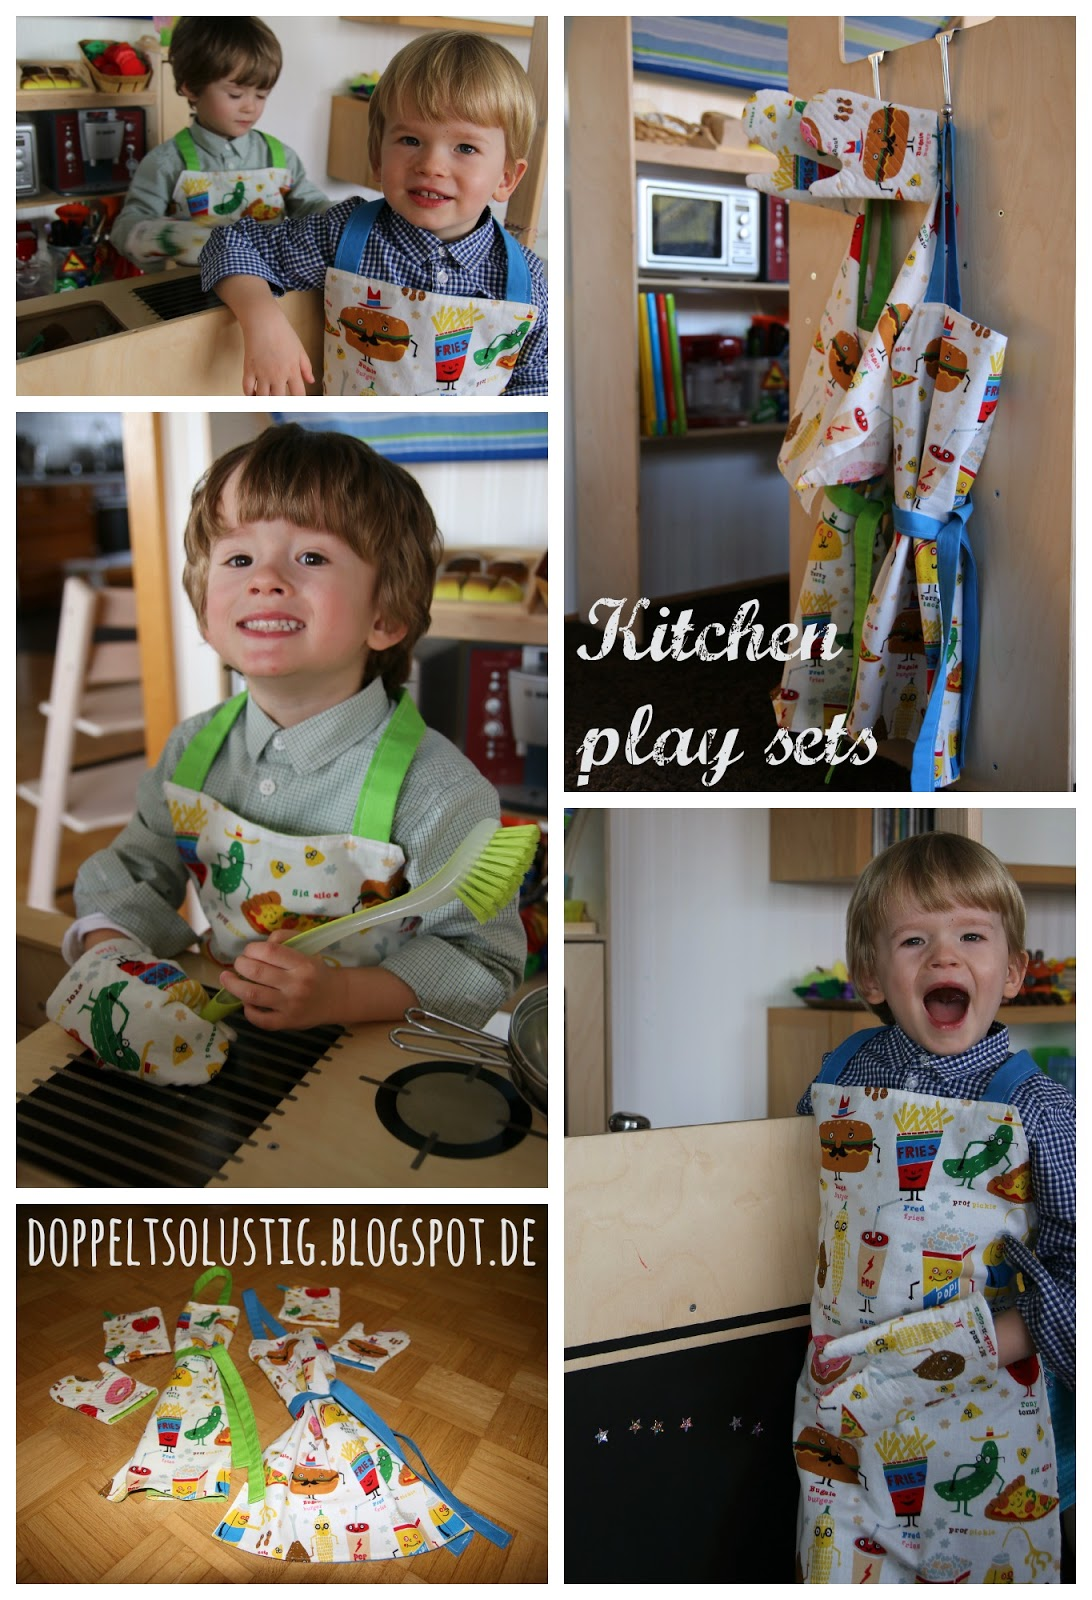 Kitchen play sets | Twice the fun